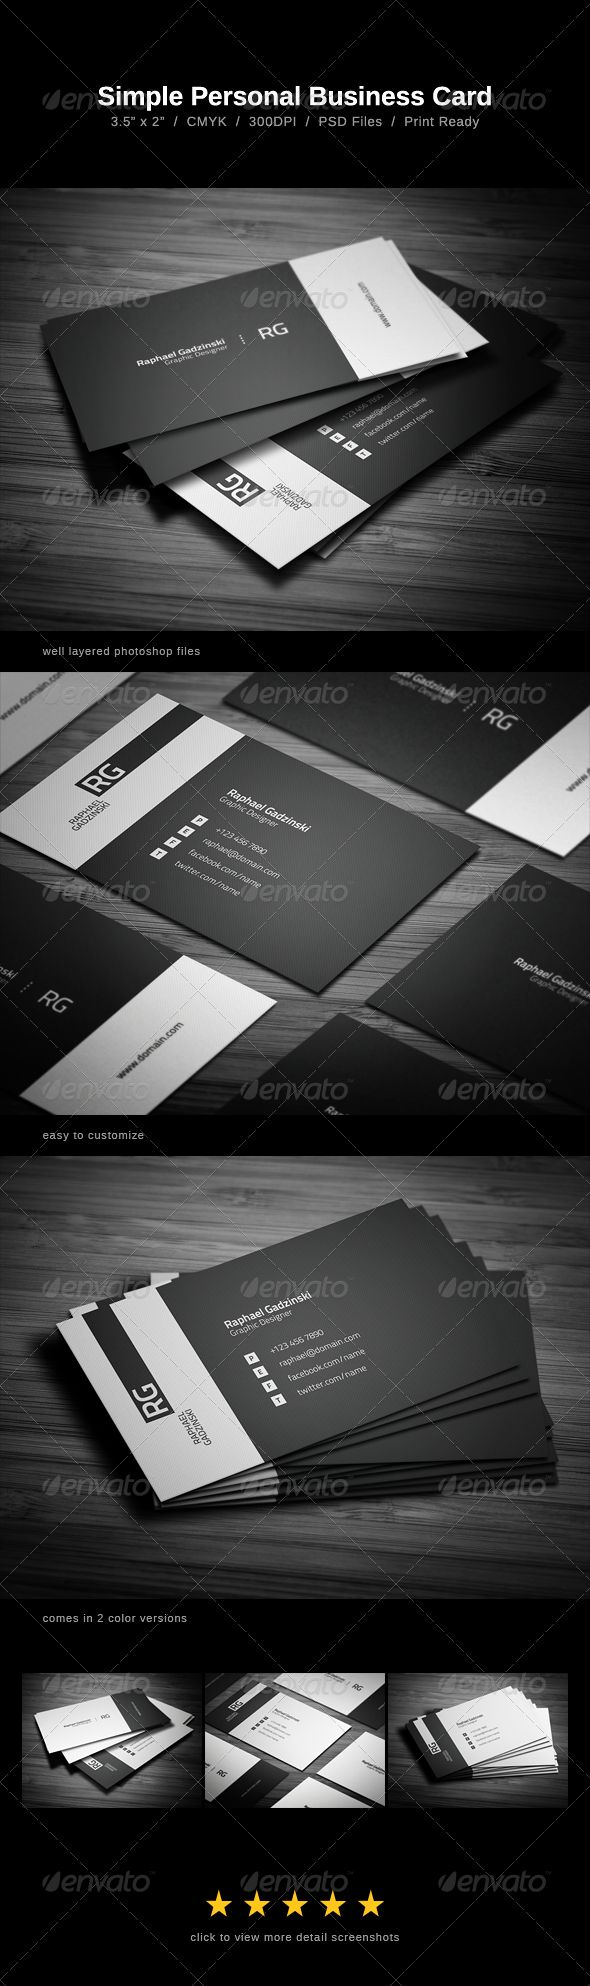 The 25 best sample business cards ideas on pinterest samples of simple business card magicingreecefo Images